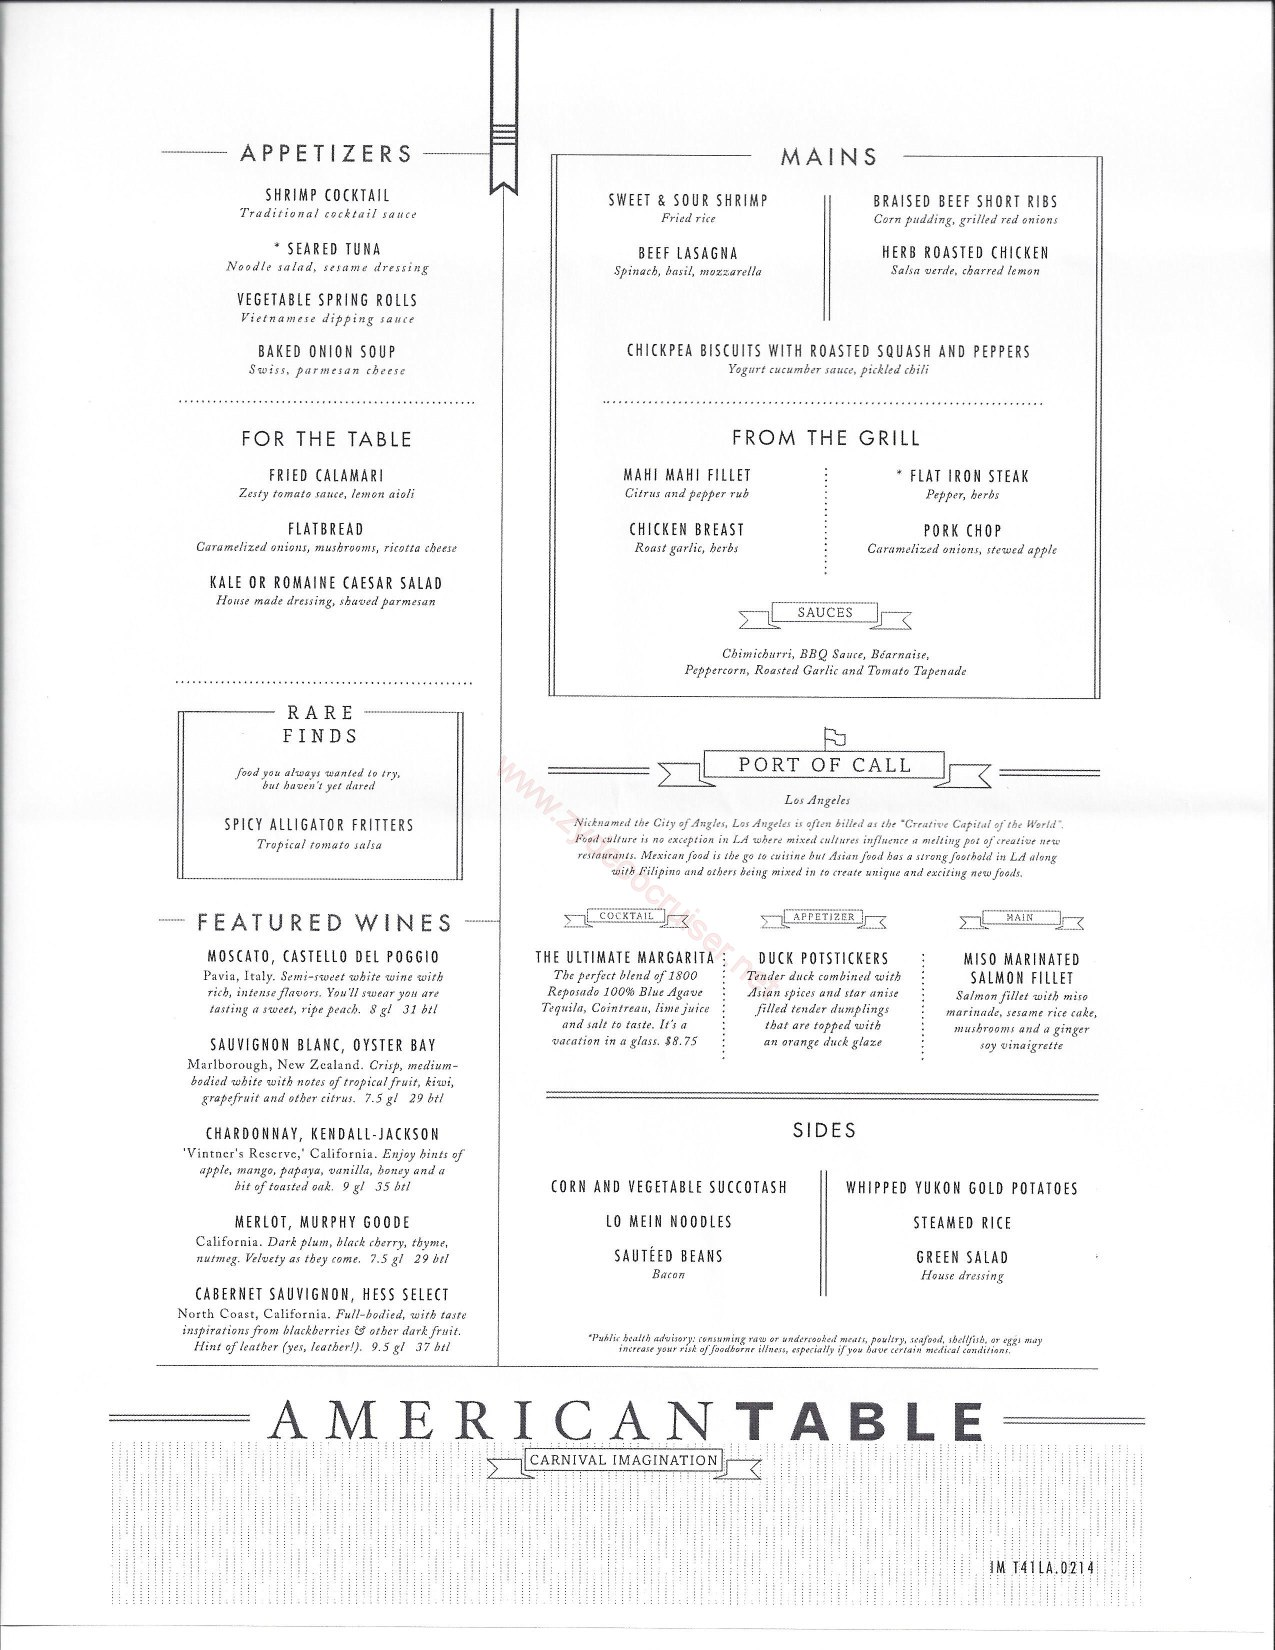 Carnival imagination american table mdr menus los angeles for Table table restaurant menu